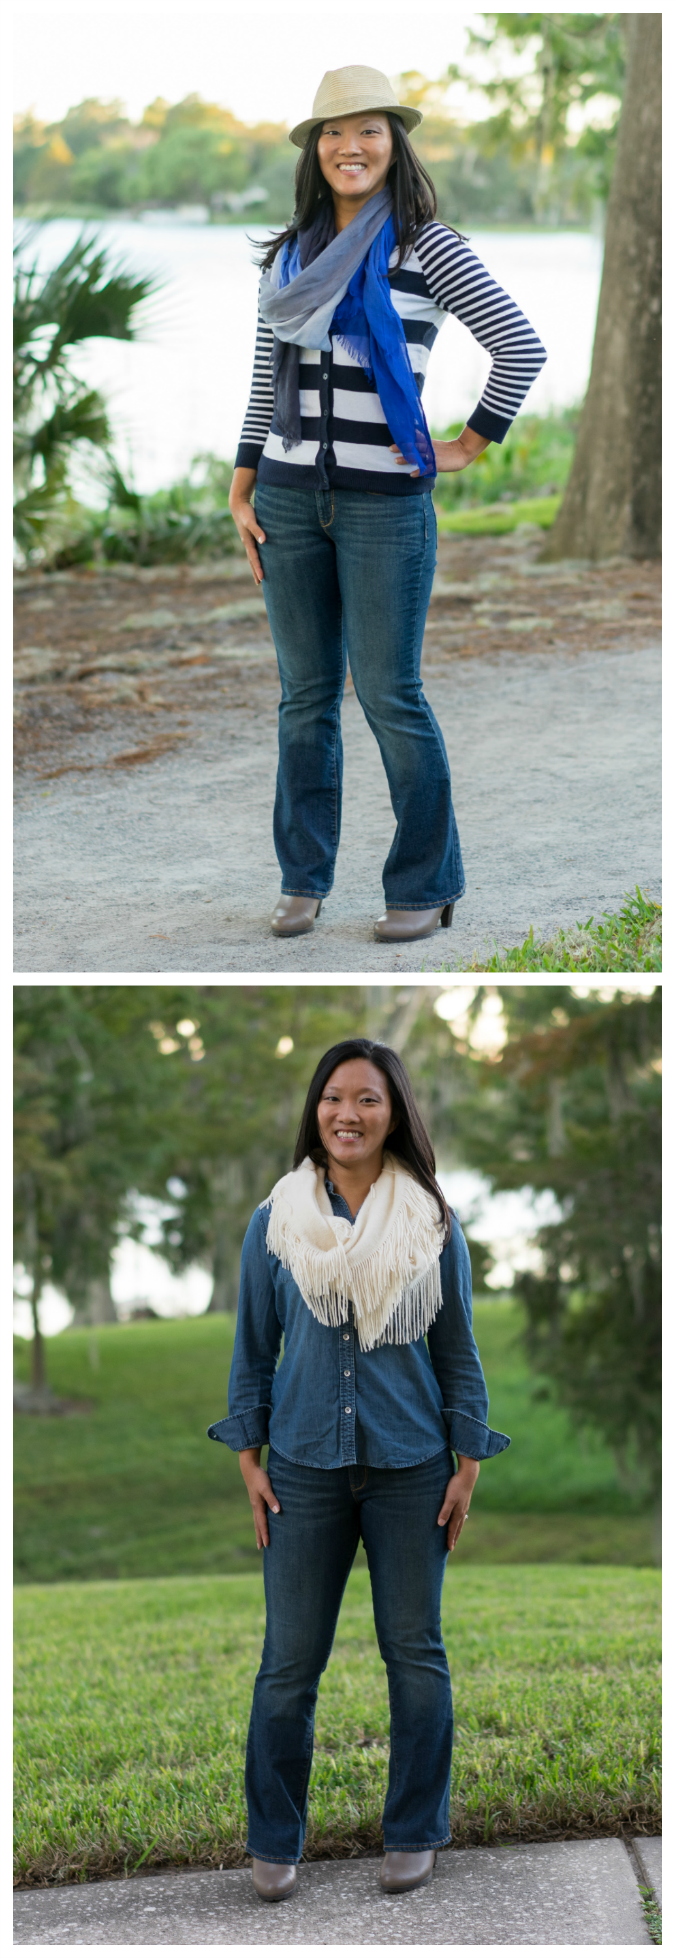 Mom style jeans for fall